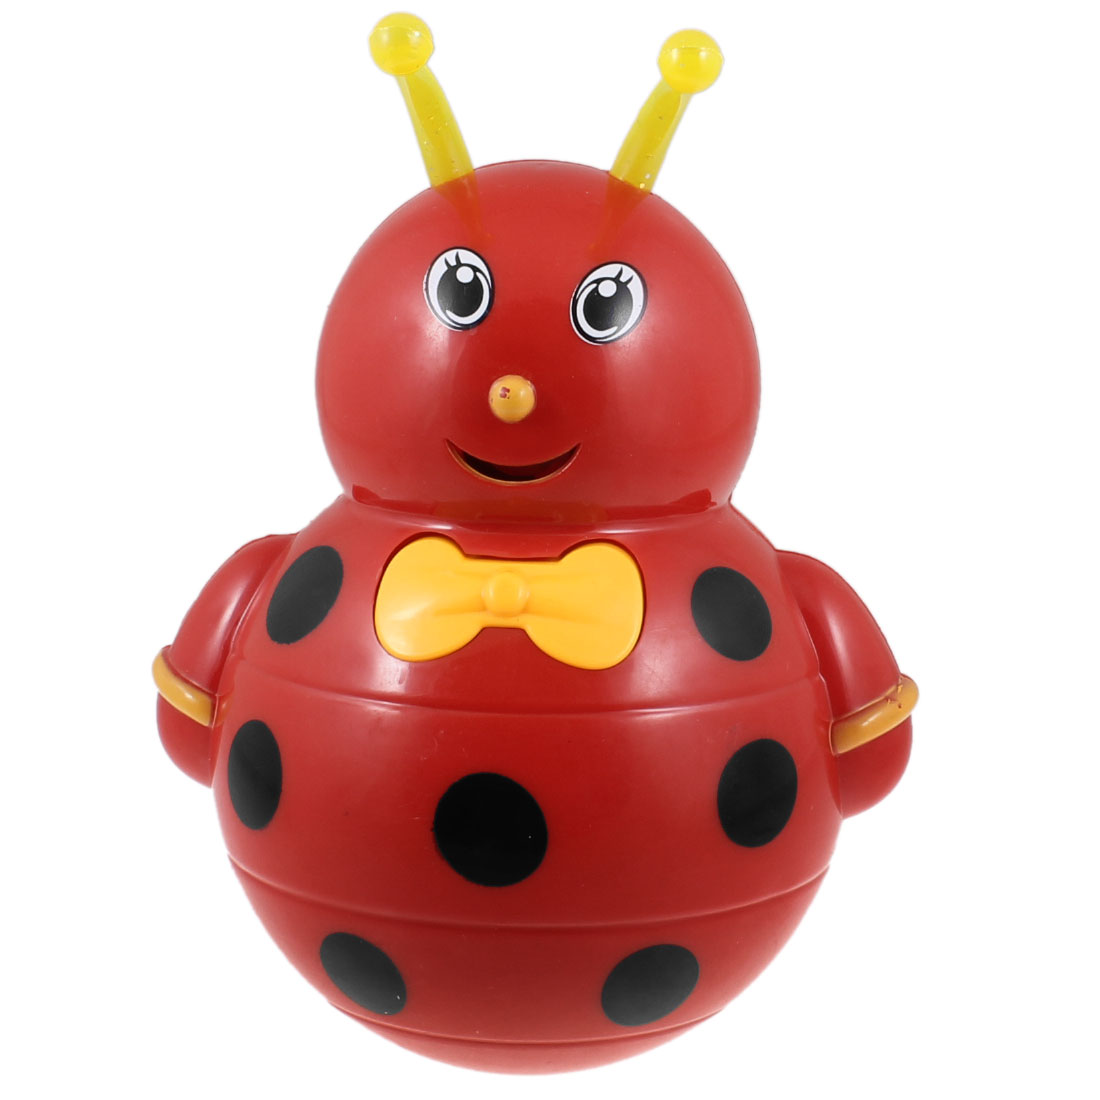 18cm High Red Black Plastic Honeybee Shaped Tumbler Toy for